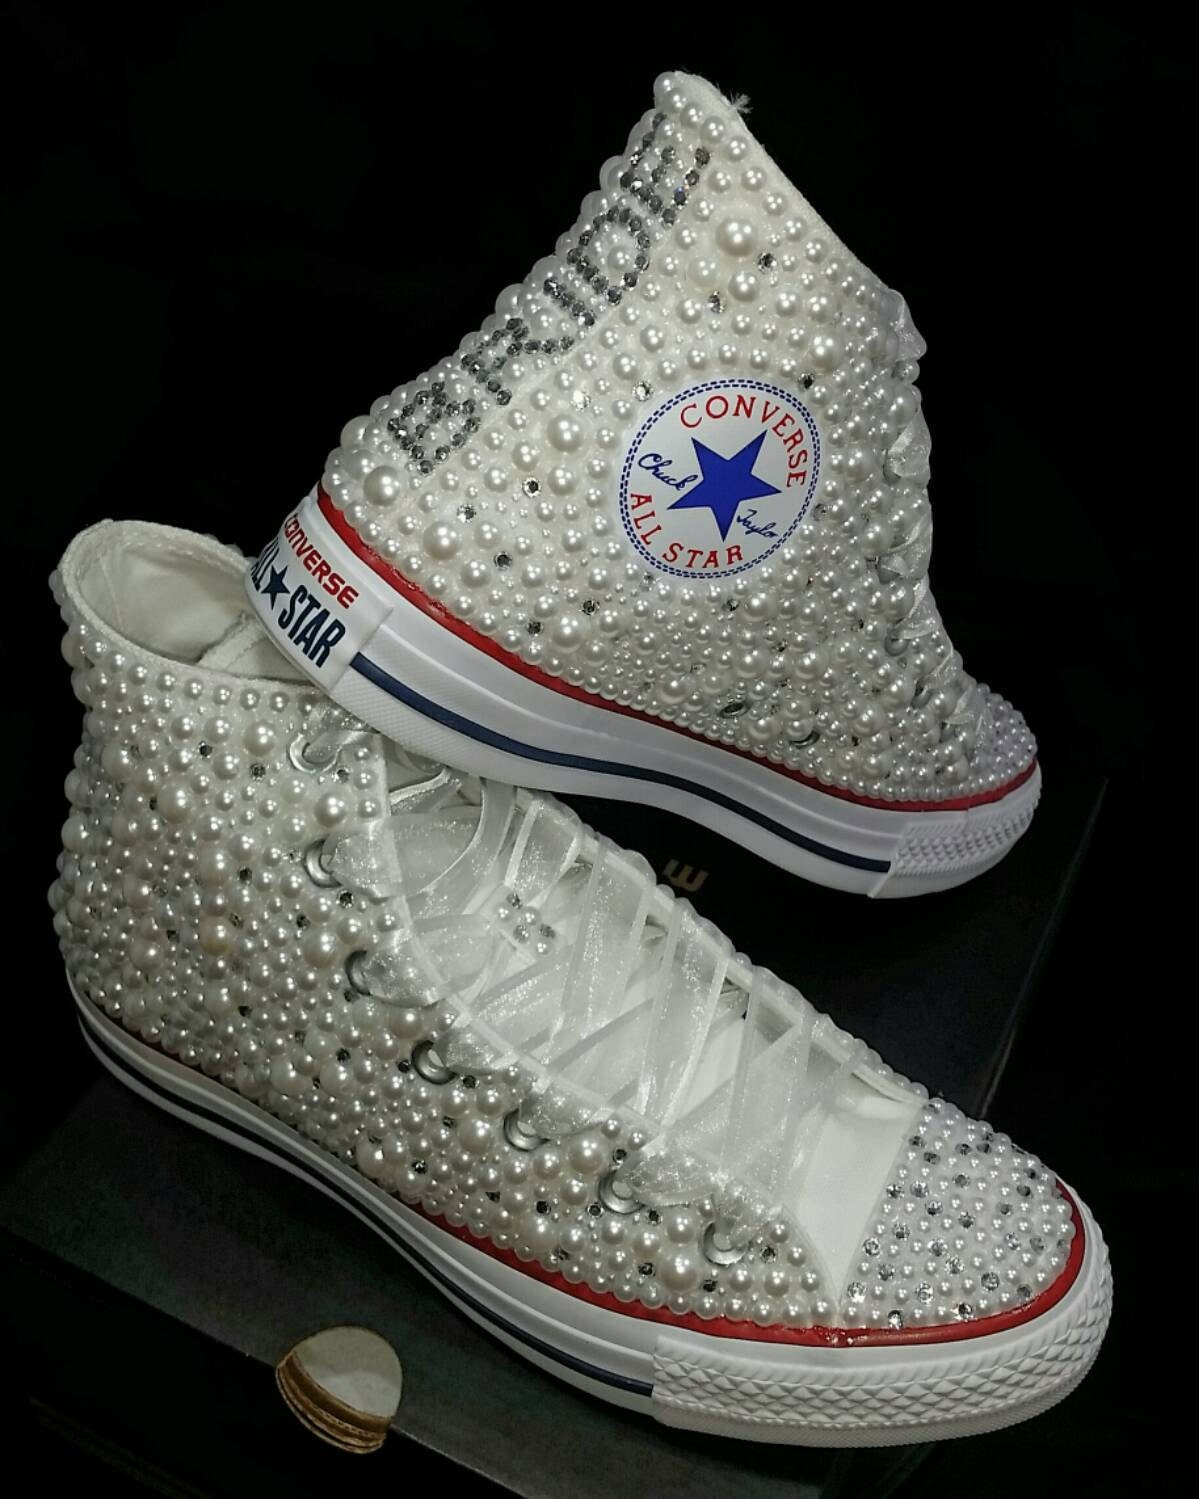 698f1696bd6a Wedding Converse Bridal Sneakers Bling   Pearls Custom